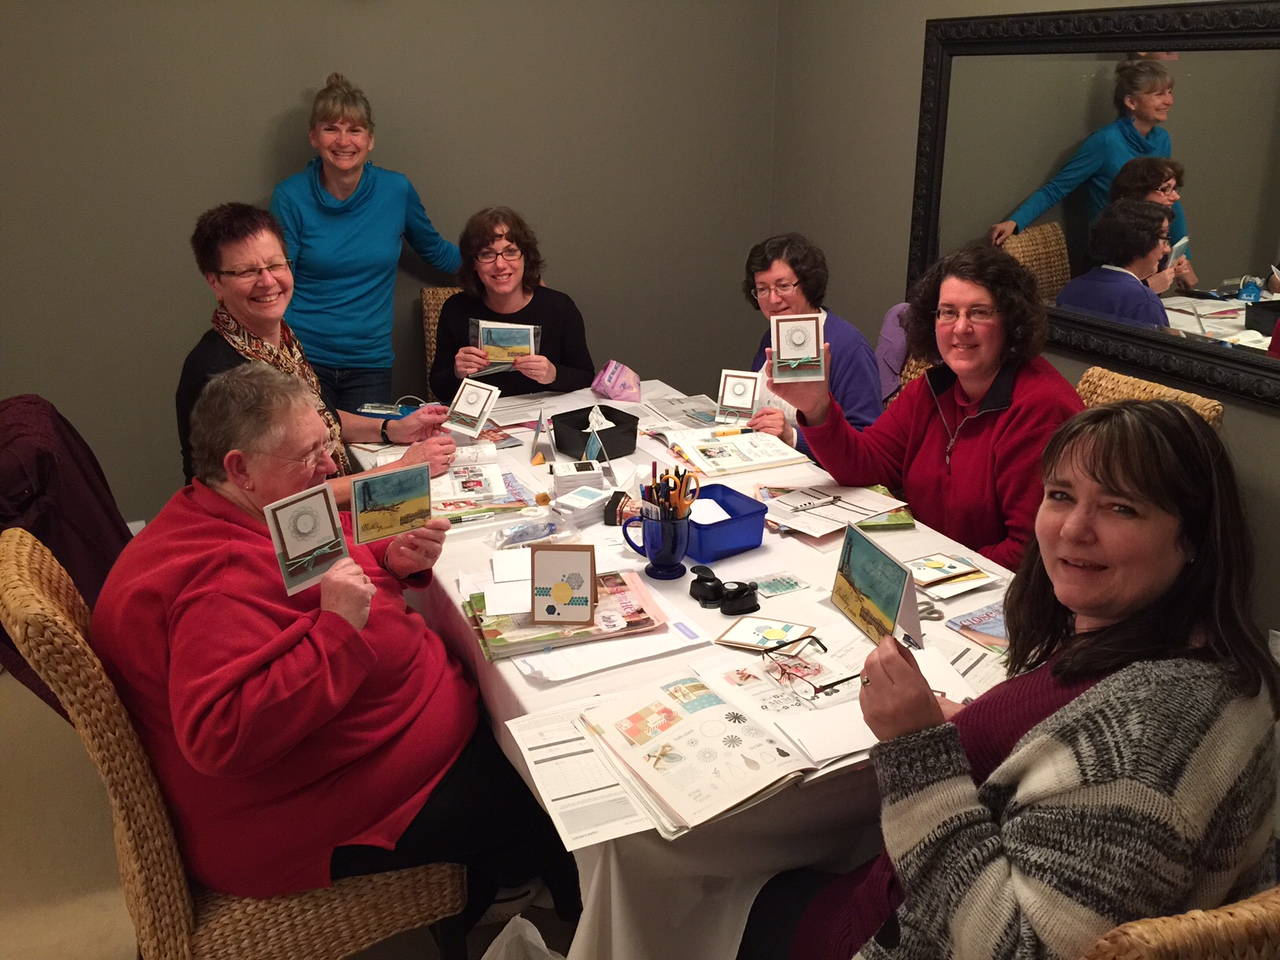 Everyone happy with the results of their card class, new techniques learned, beautiful cards created.